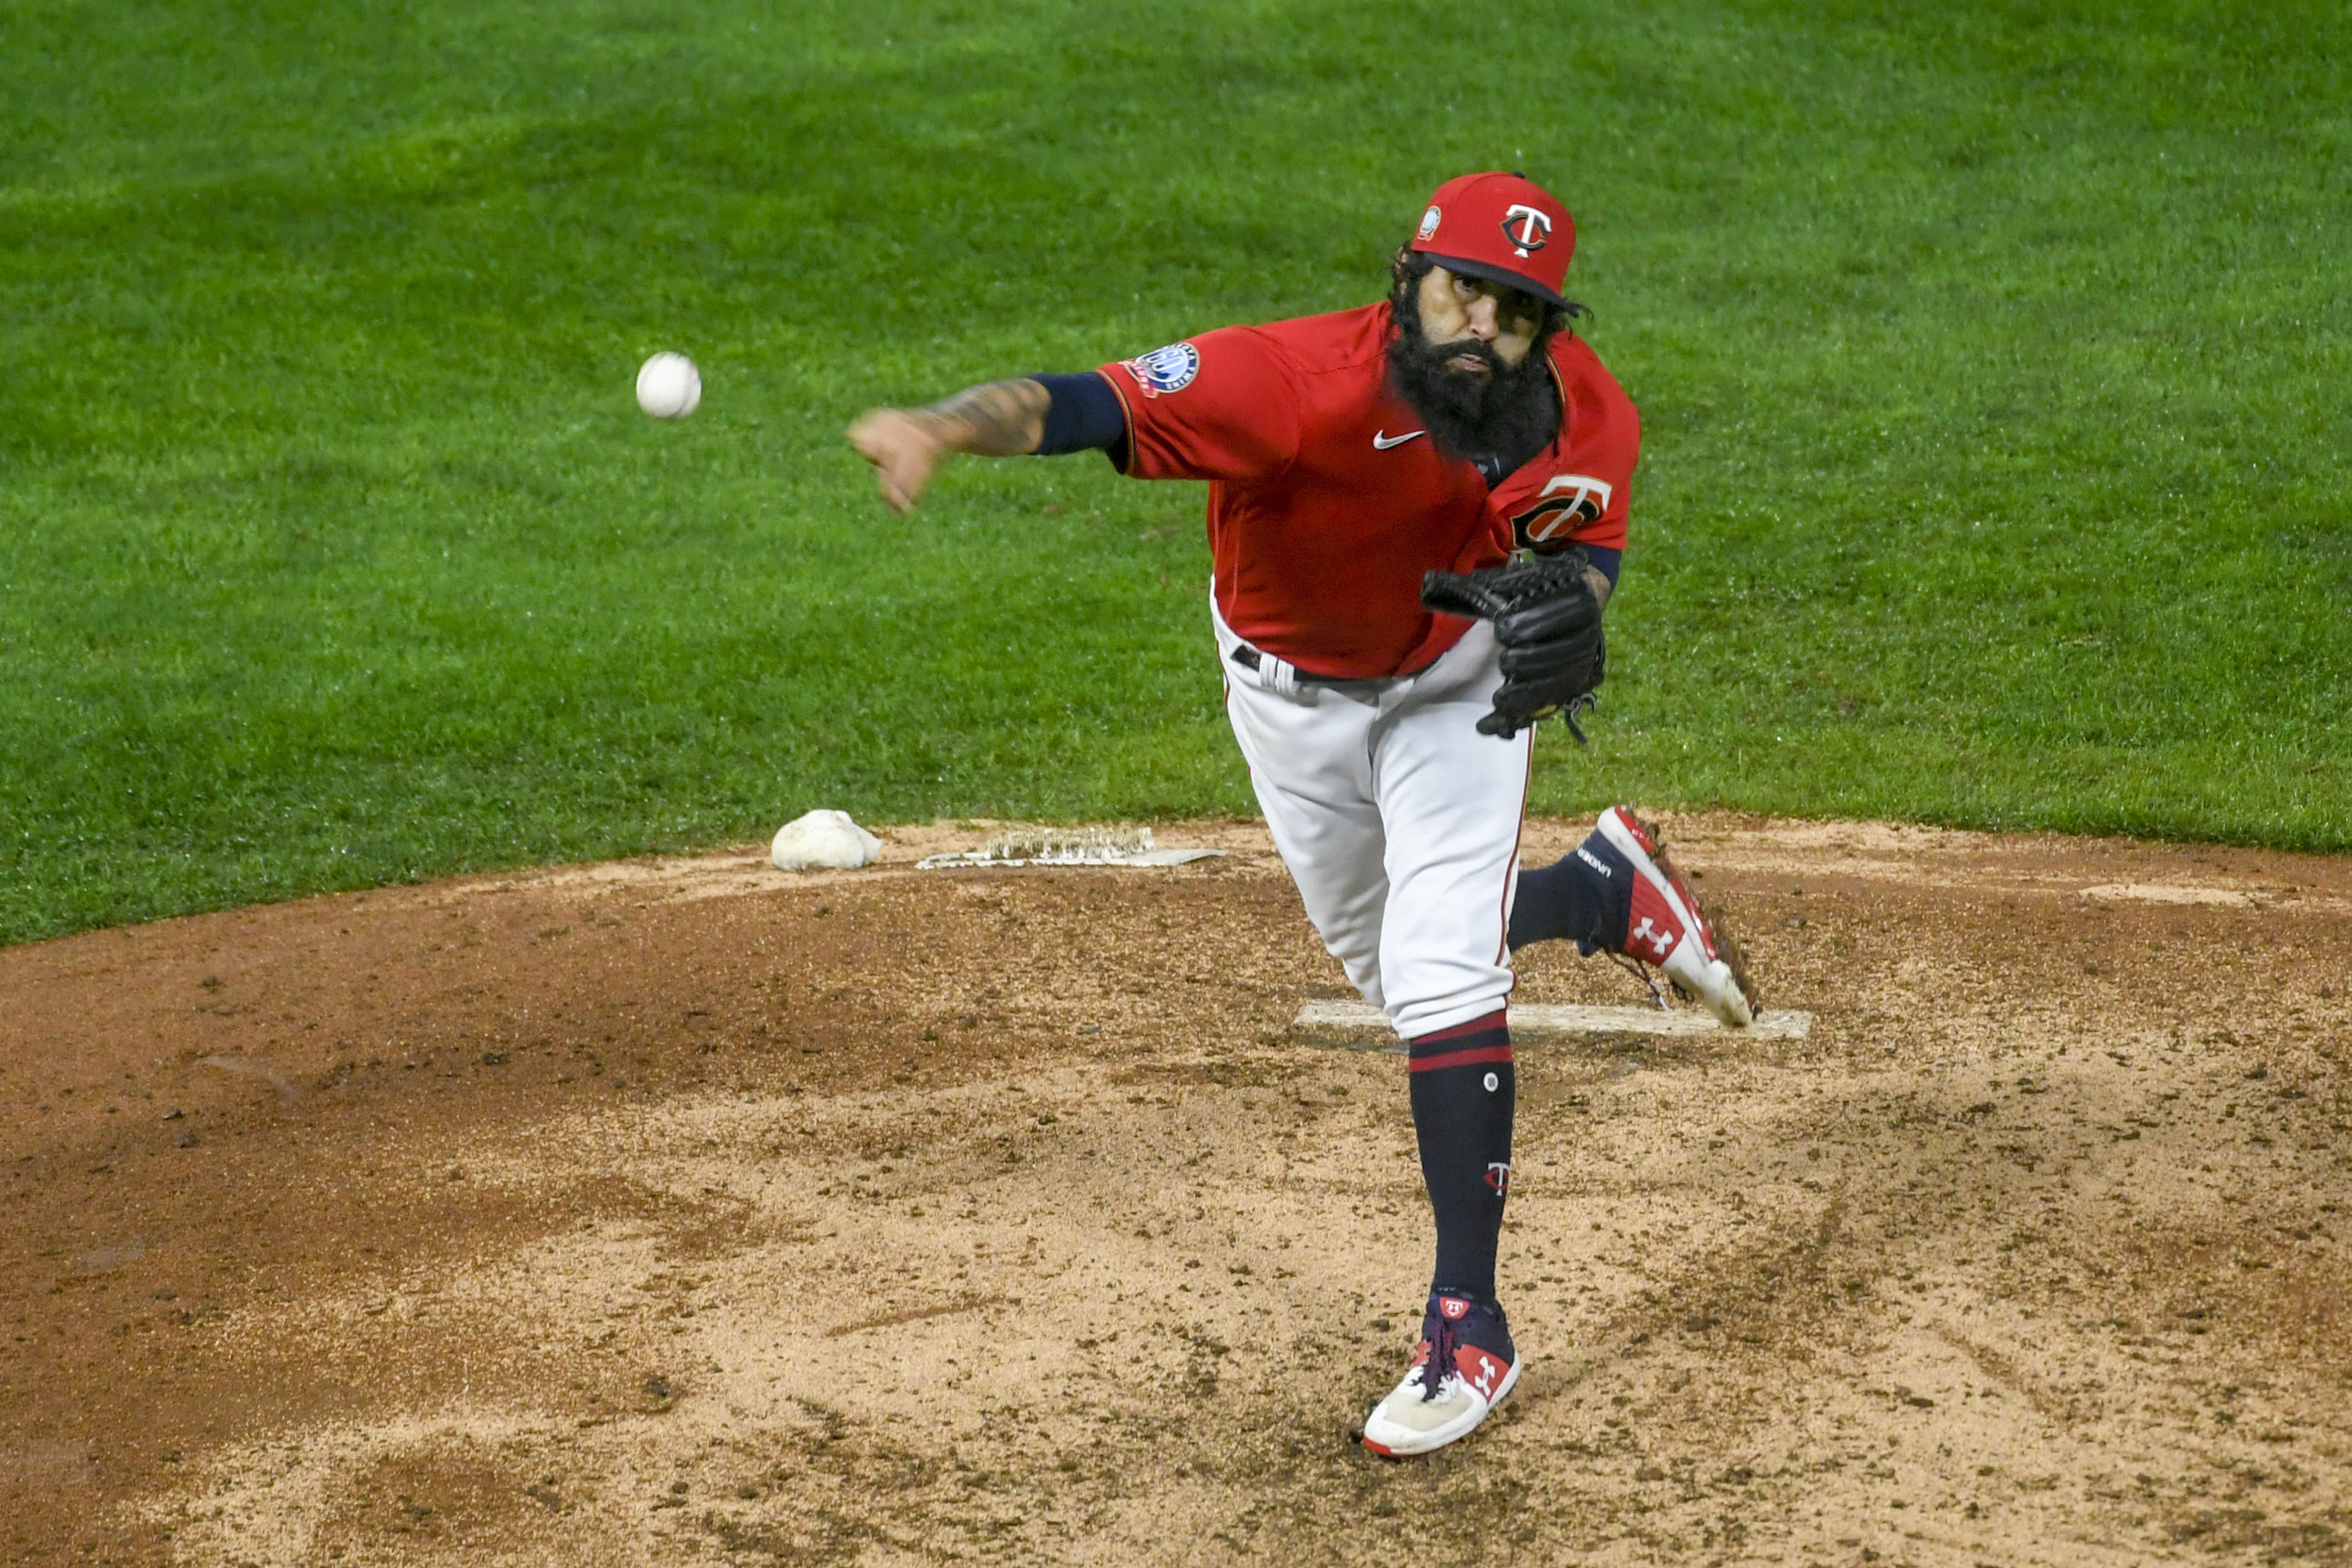 Minnesota Twins pitcher Sergio Romo throws to a Cleveland Indians batter during the eighth inning of a baseball game Friday, Sept. 11, 2020, in Minneapolis. The Twins won 3-1. (AP Photo/Craig Lassig)